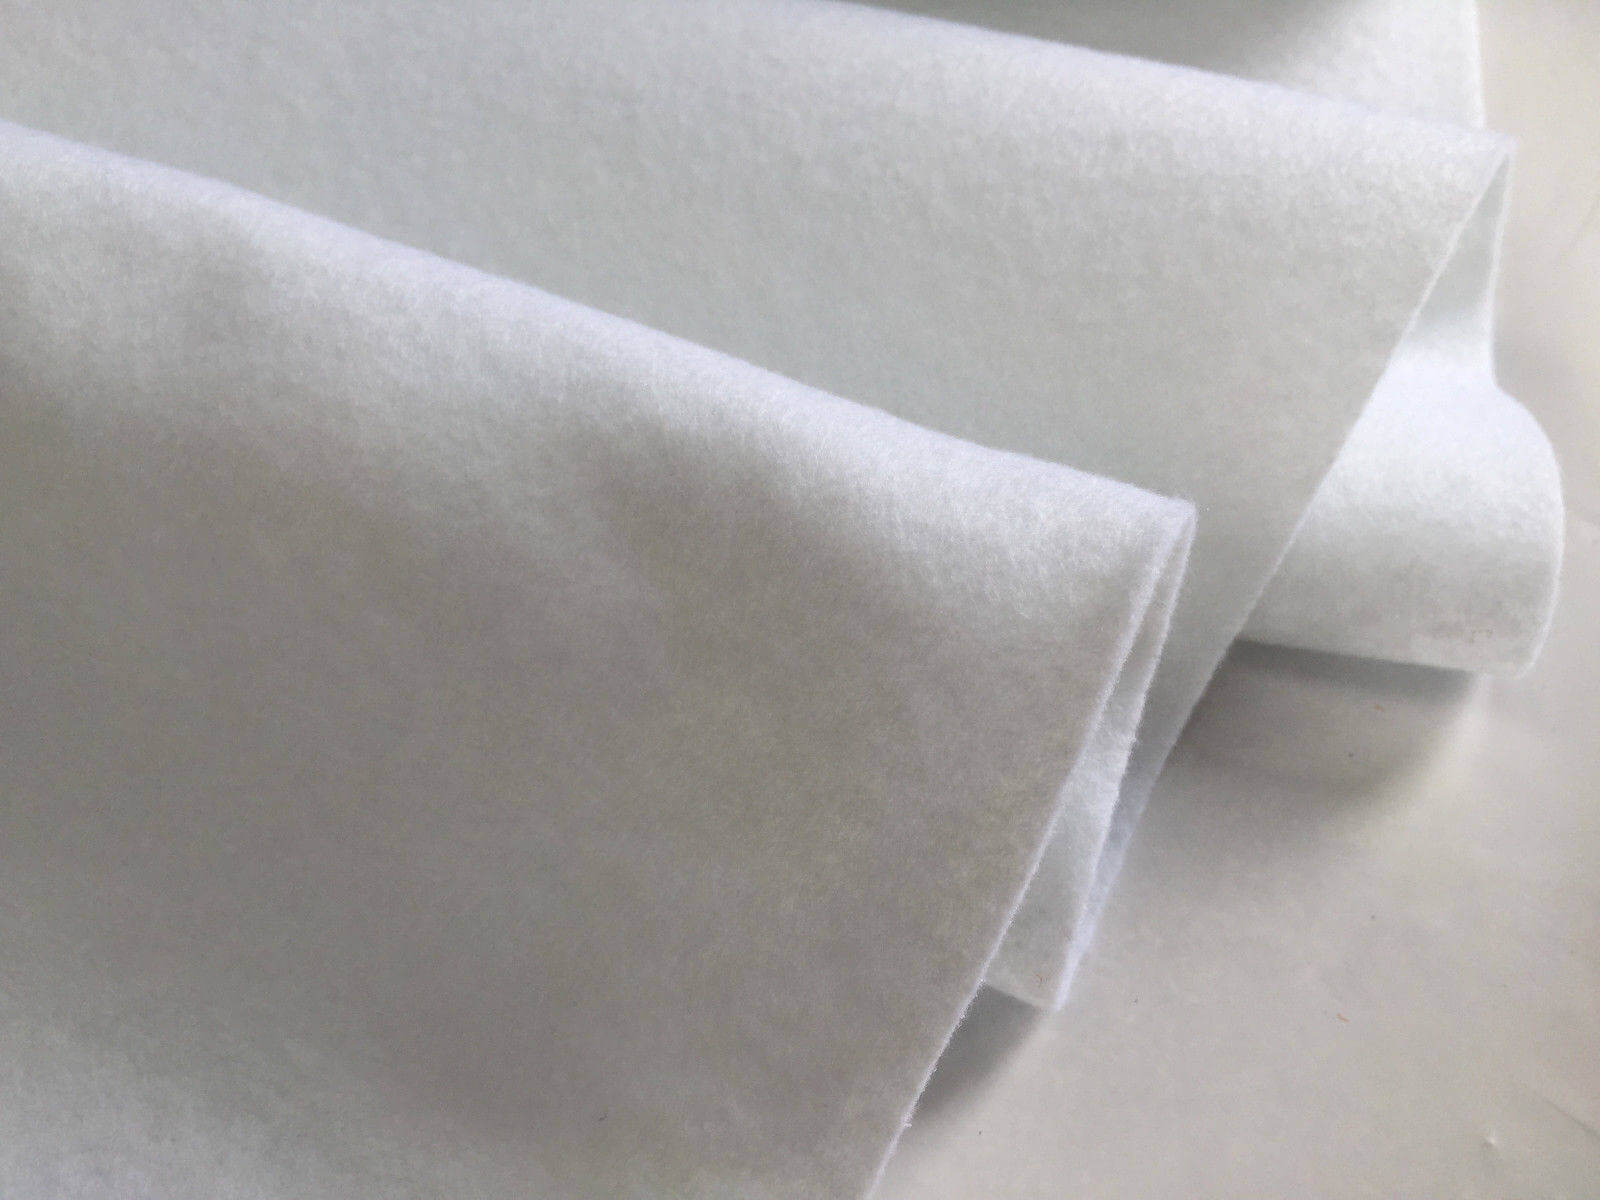 felt-fabric-material-craft-plain-colours-polyester-102cm-wide-white-5ace60421.jpg